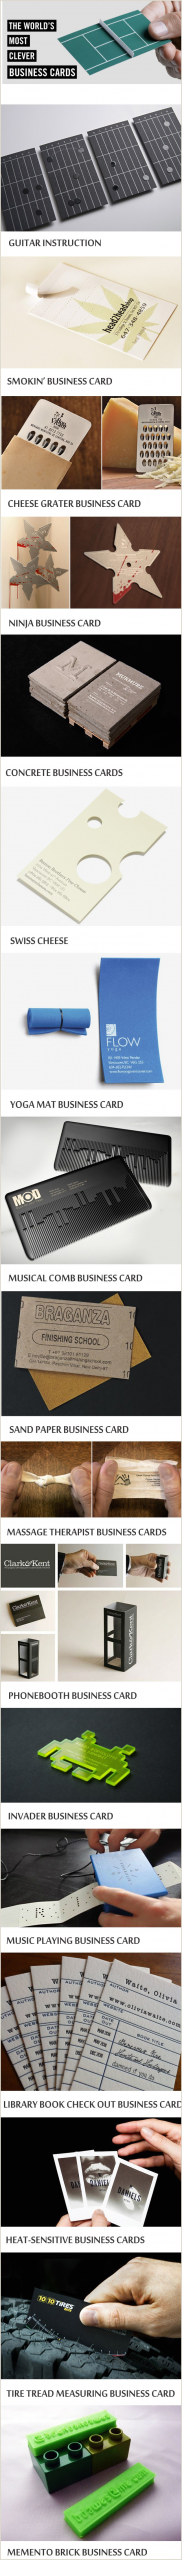 How To Make The Most Unique Business Cards These Are The World S Most Clever Business Cards